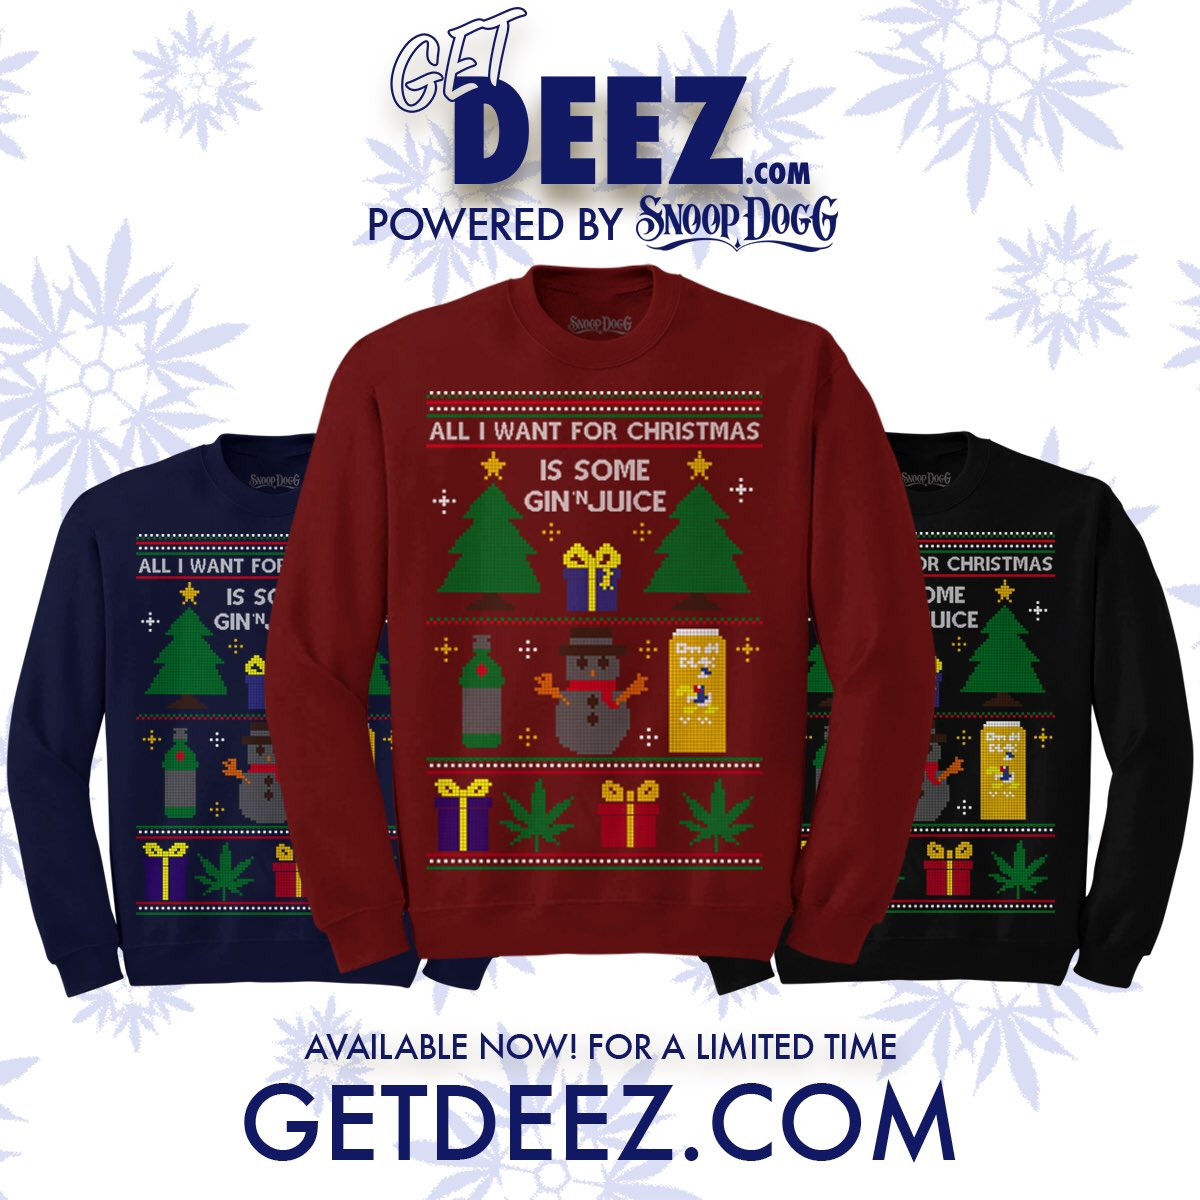 Snoop Dogg Christmas.Snoop Dogg On Twitter Blessn Yall For The Holidays Https